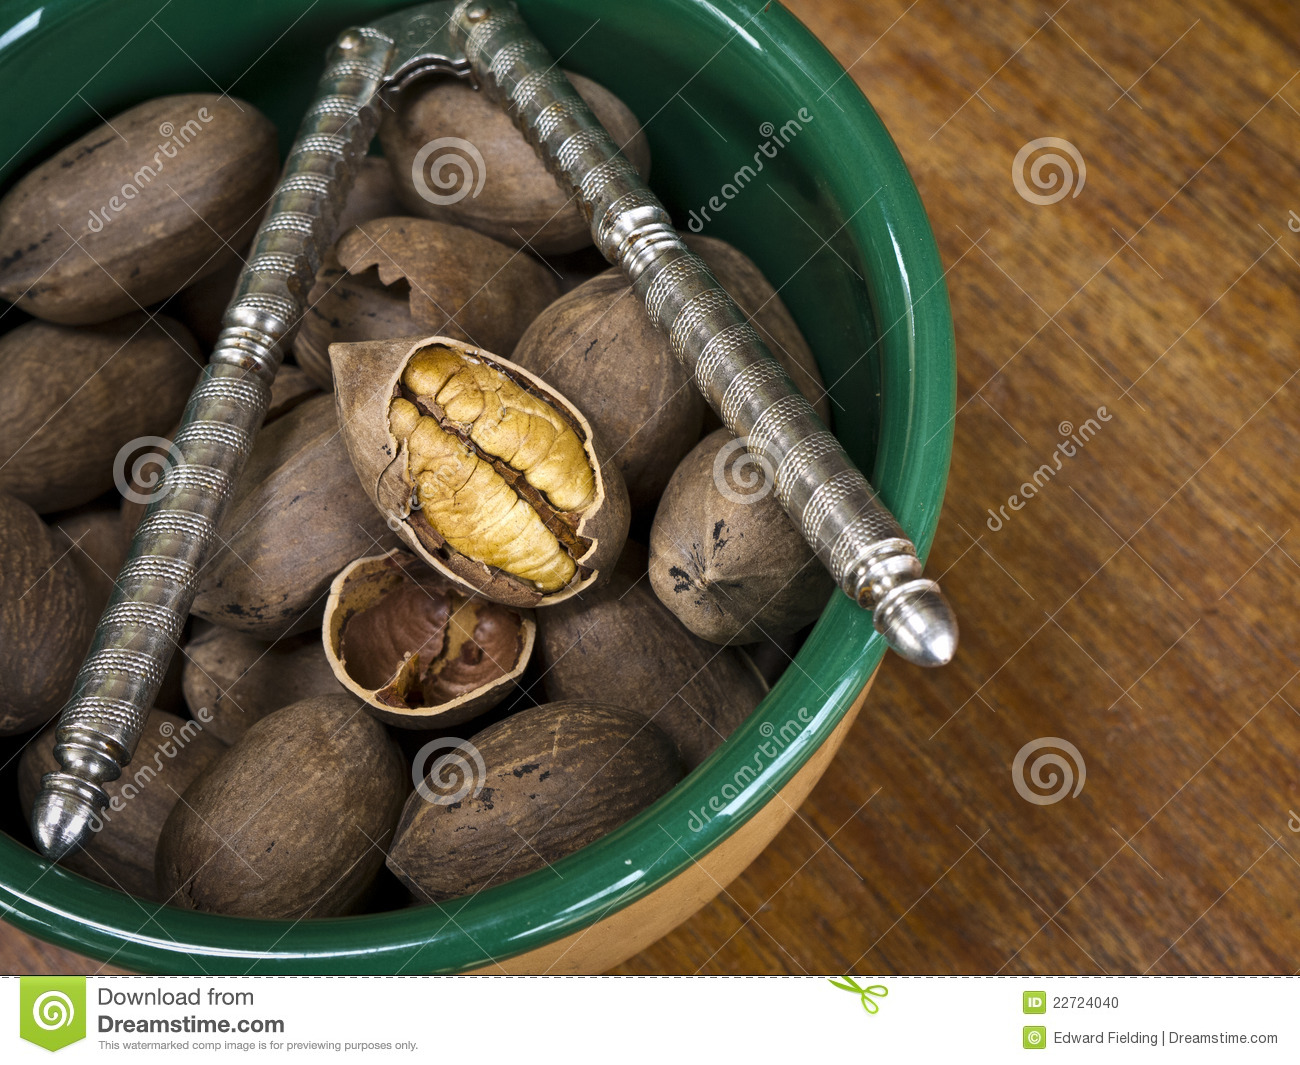 Bowl Of Pecans With Nut Cracker Stock Photo - Image of harvest